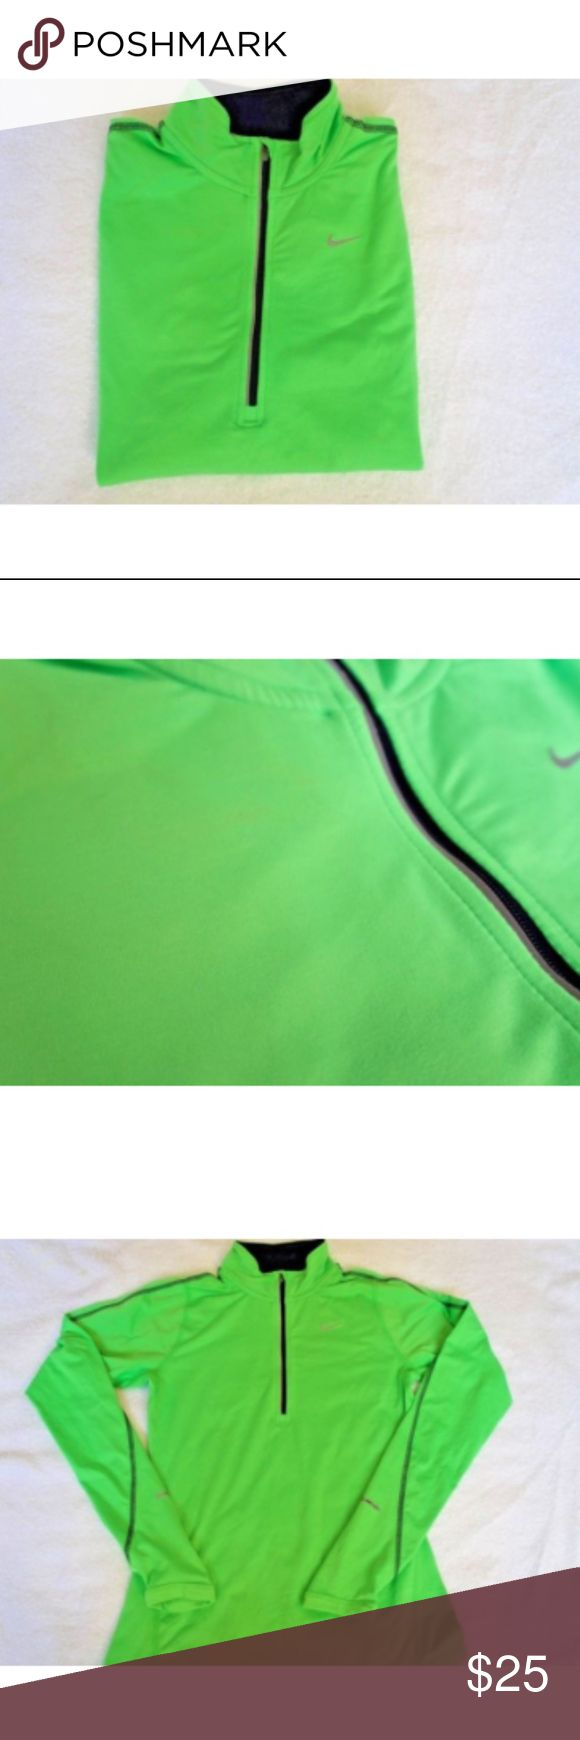 Nike Women's Lime Green Quarter Zip Pullover Size XS Has a small stain by the zipper.  Please see photos. Nike Tops Sweatshirts & Hoodies